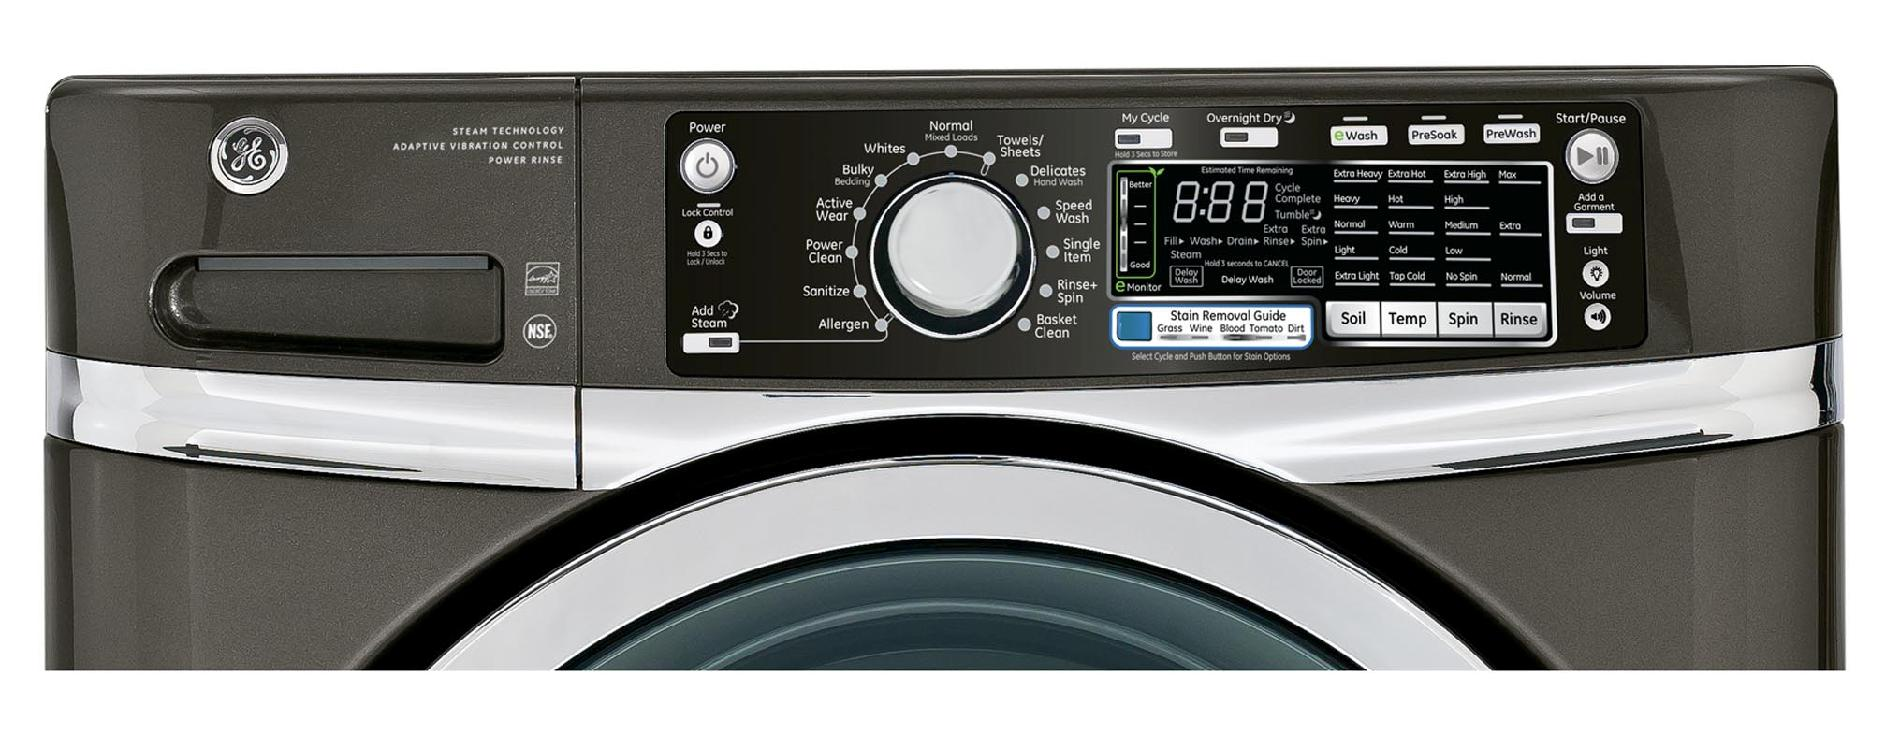 GE 4.8 cu. ft. RightHeight™ Design Front-Load Washer - Metallic Carbon